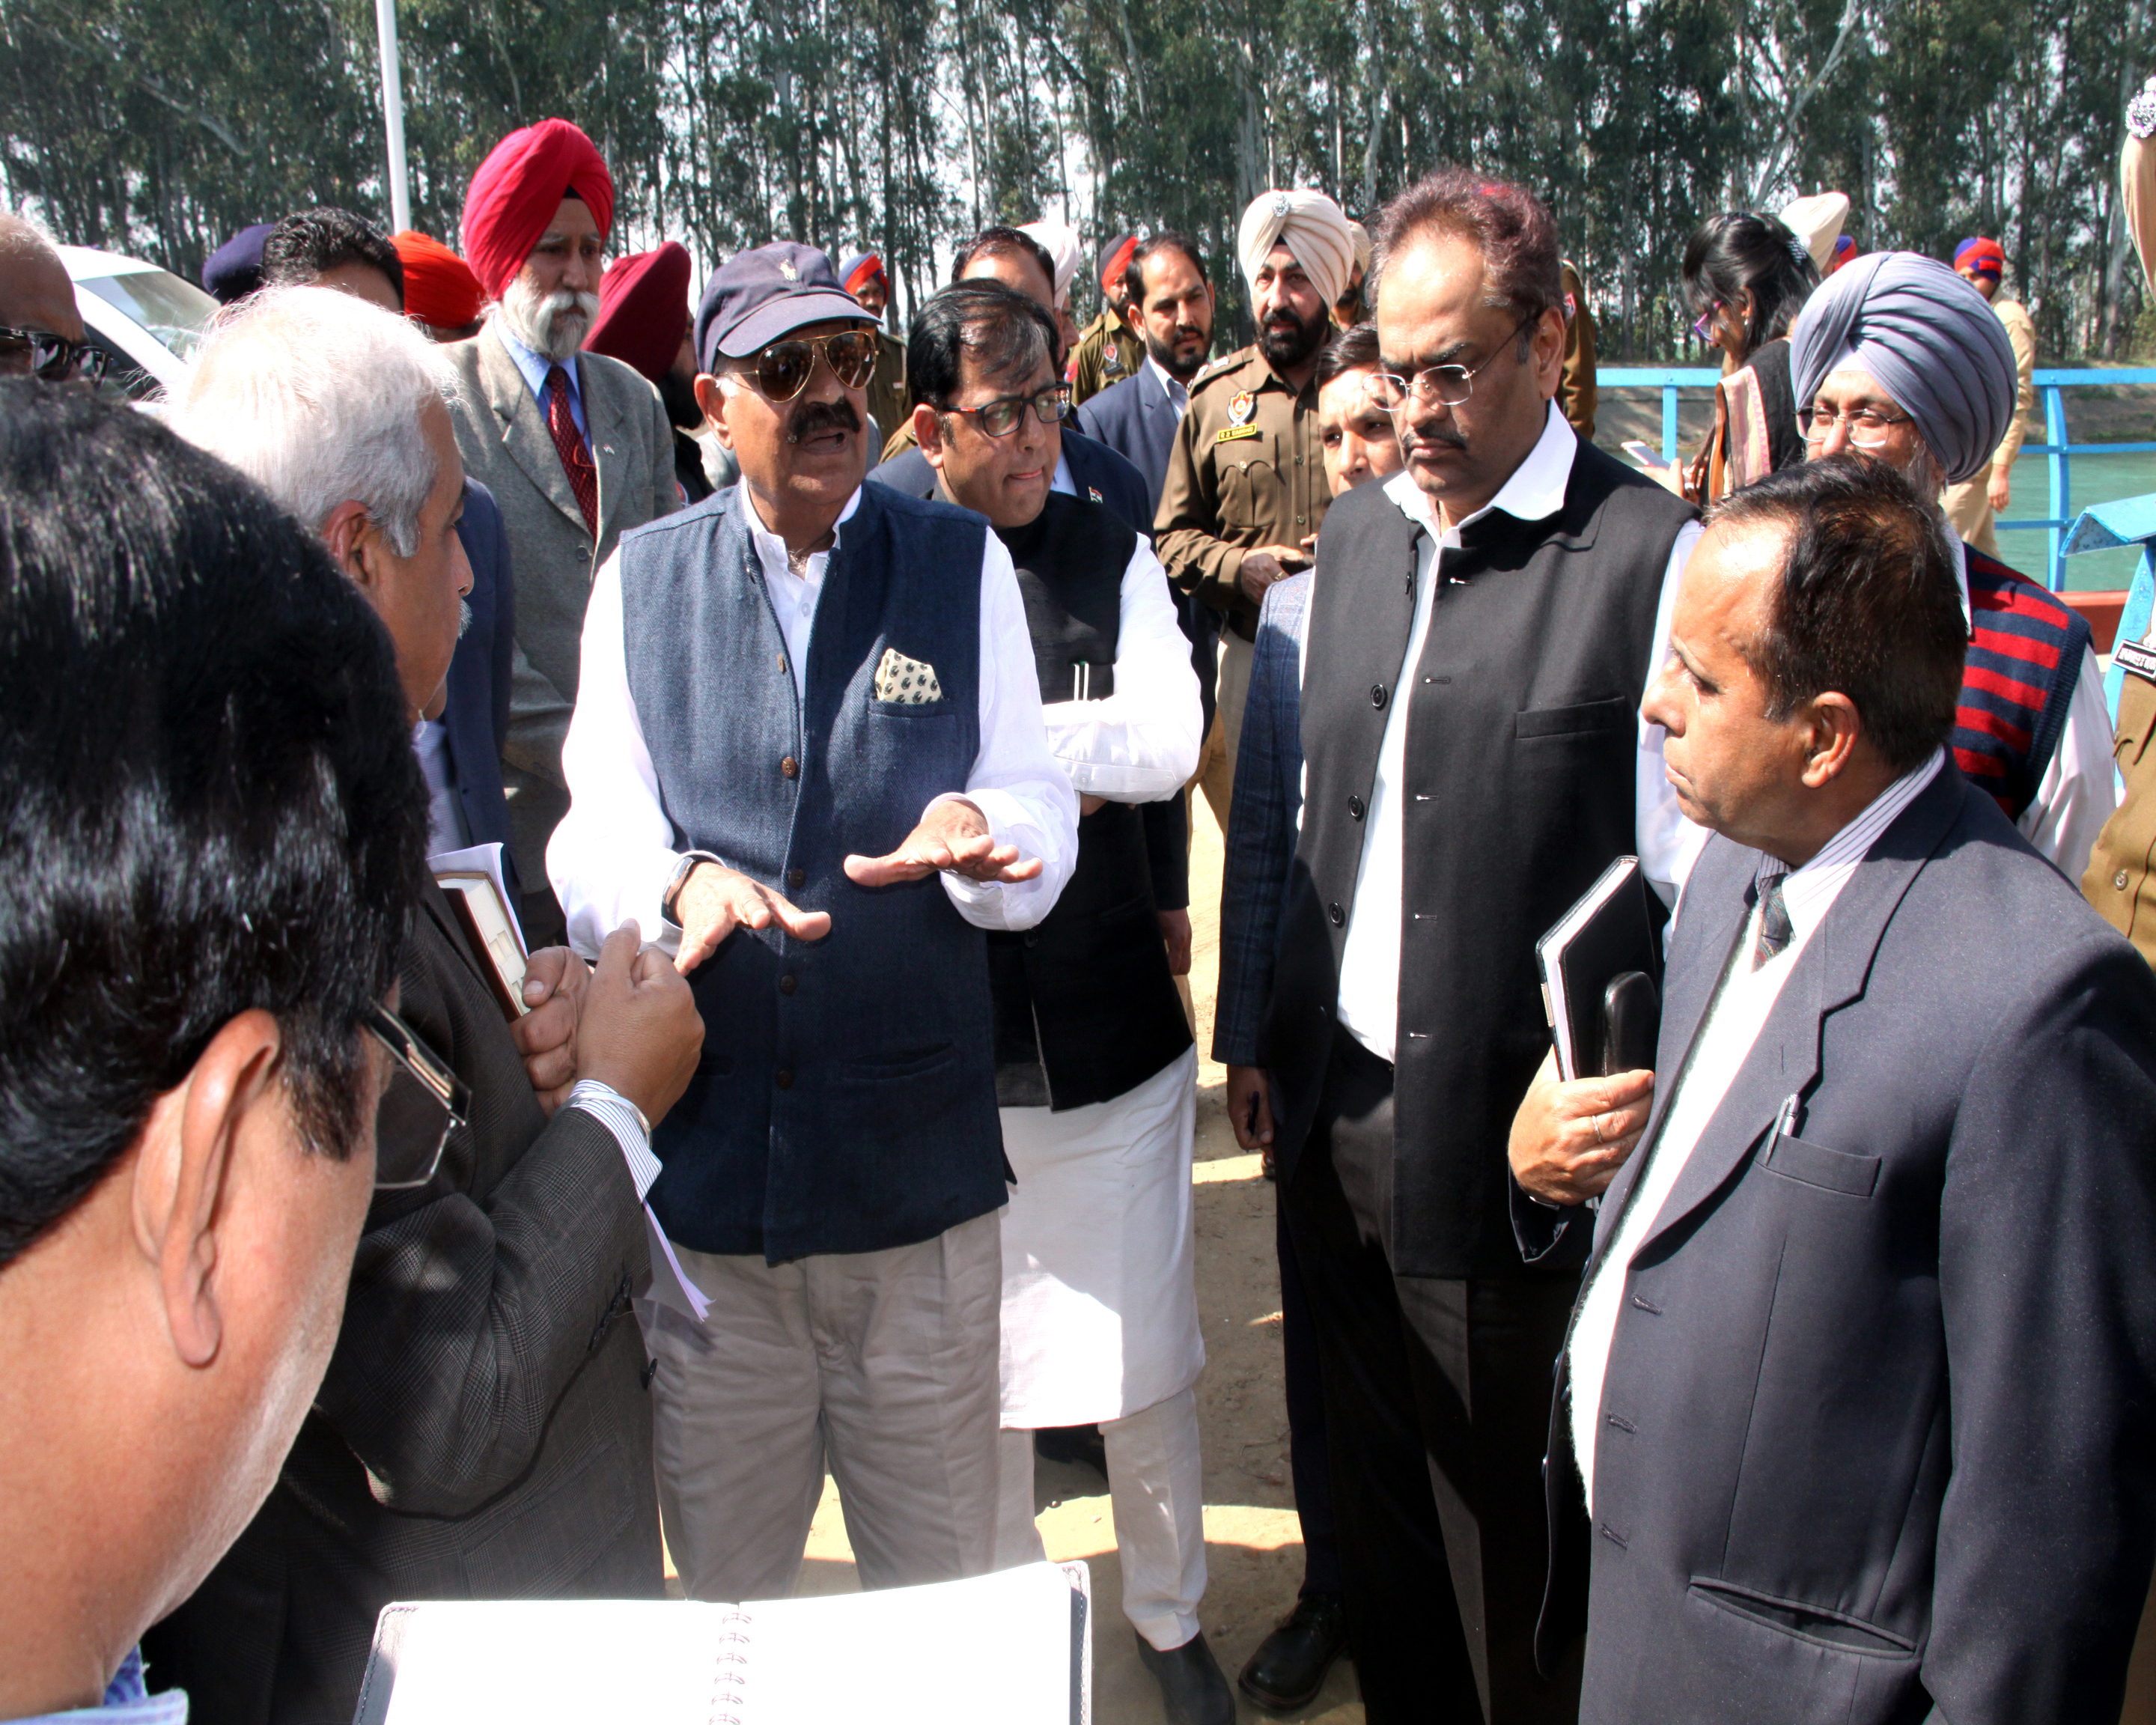 The Governor of Punjab and Administrator, UT, Chandigarh, Shri V.P. Singh Badnore alongwith the Adviser to the Administrator, UT, Chandigarh, Shri Parimal Rai, Mayor, MCC,  Shri Davesh Moudgil and  senior officers visiting at Kajauli Water Works on Monday, February 19, 2018.